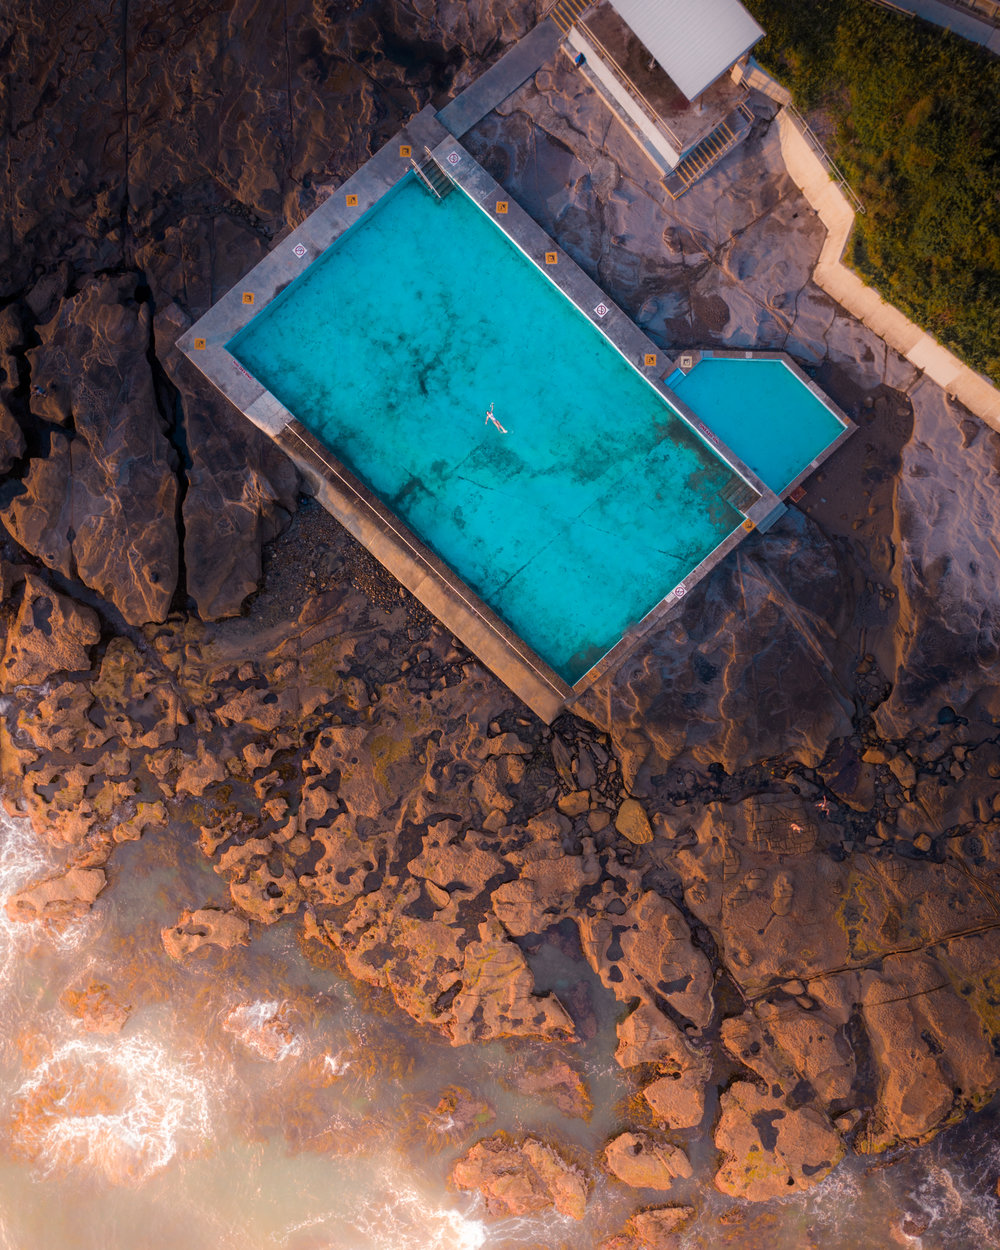 Coalcliff_pool_full.jpg